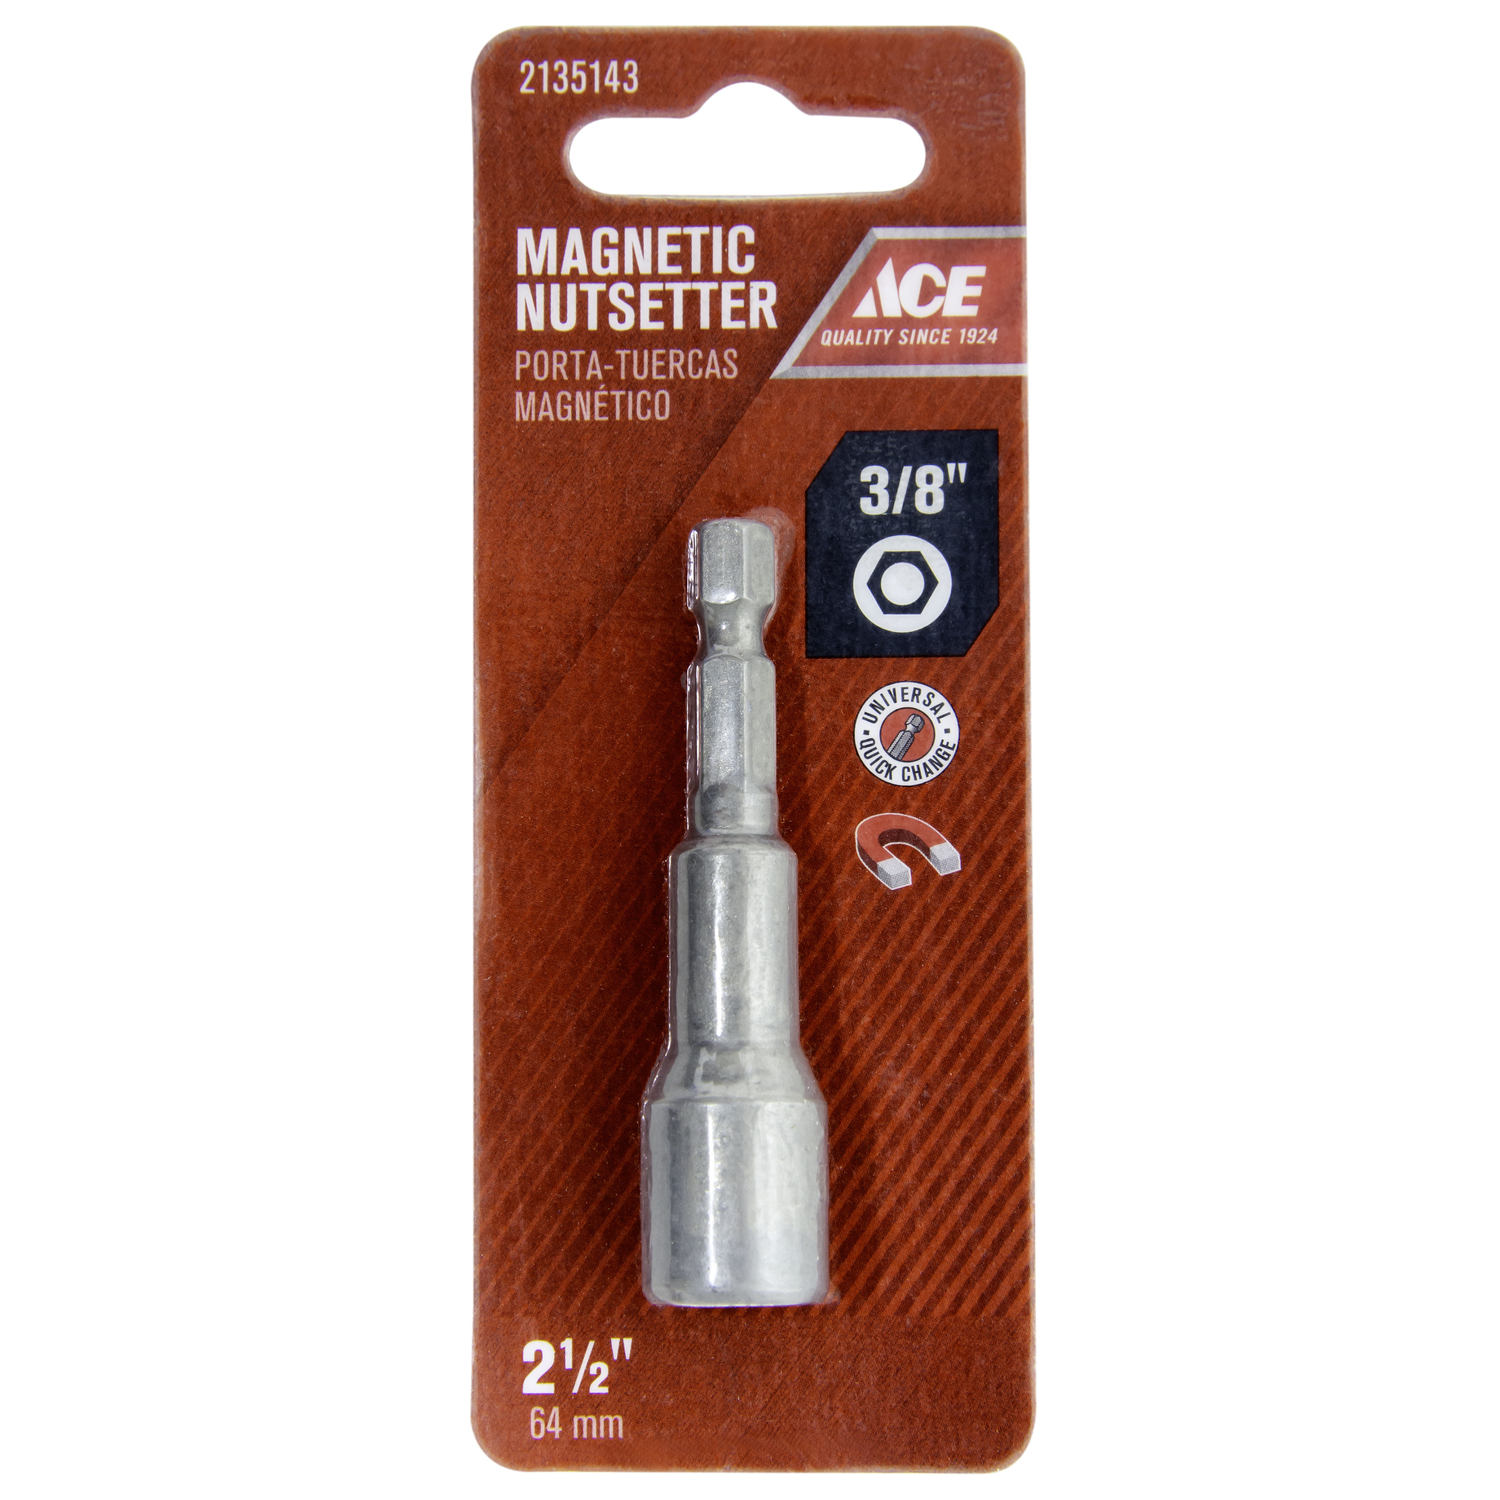 Ace  3/8 in. drive  x 2-1/2 in. L Chrome Vanadium Steel  1/4 in. Quick-Change Hex Shank  Magnetic Nu